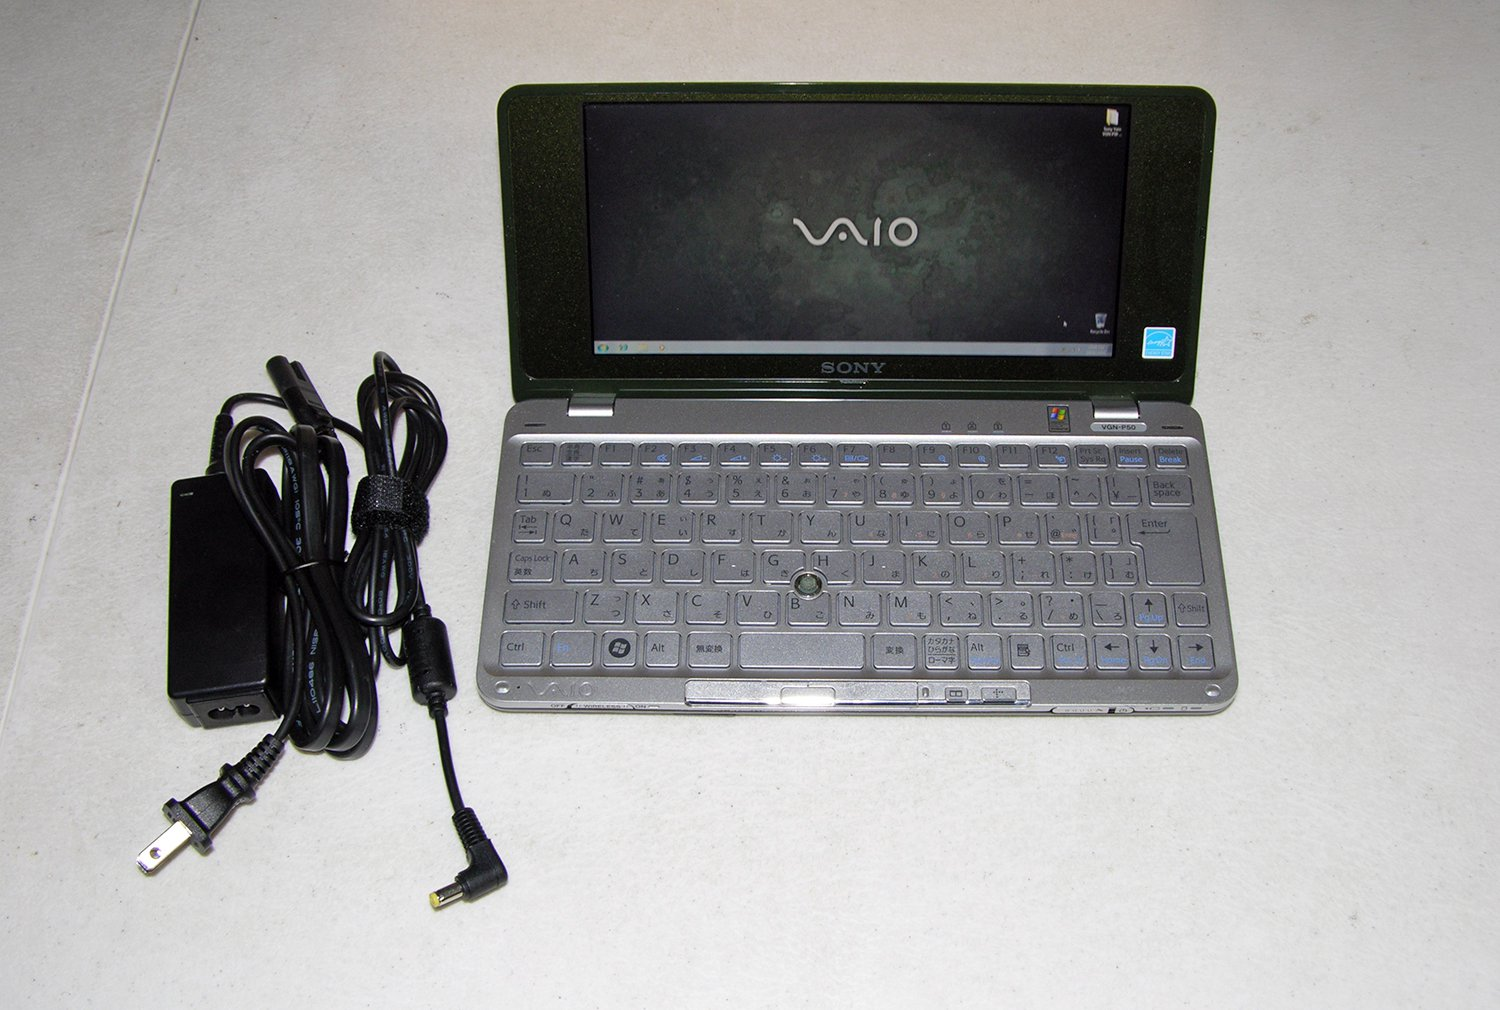 Sony Vaio P Lifestyle Pocket PC VGN P50 Intel Atom 1.33Ghz 80GB HD 1GB Ram UMPC